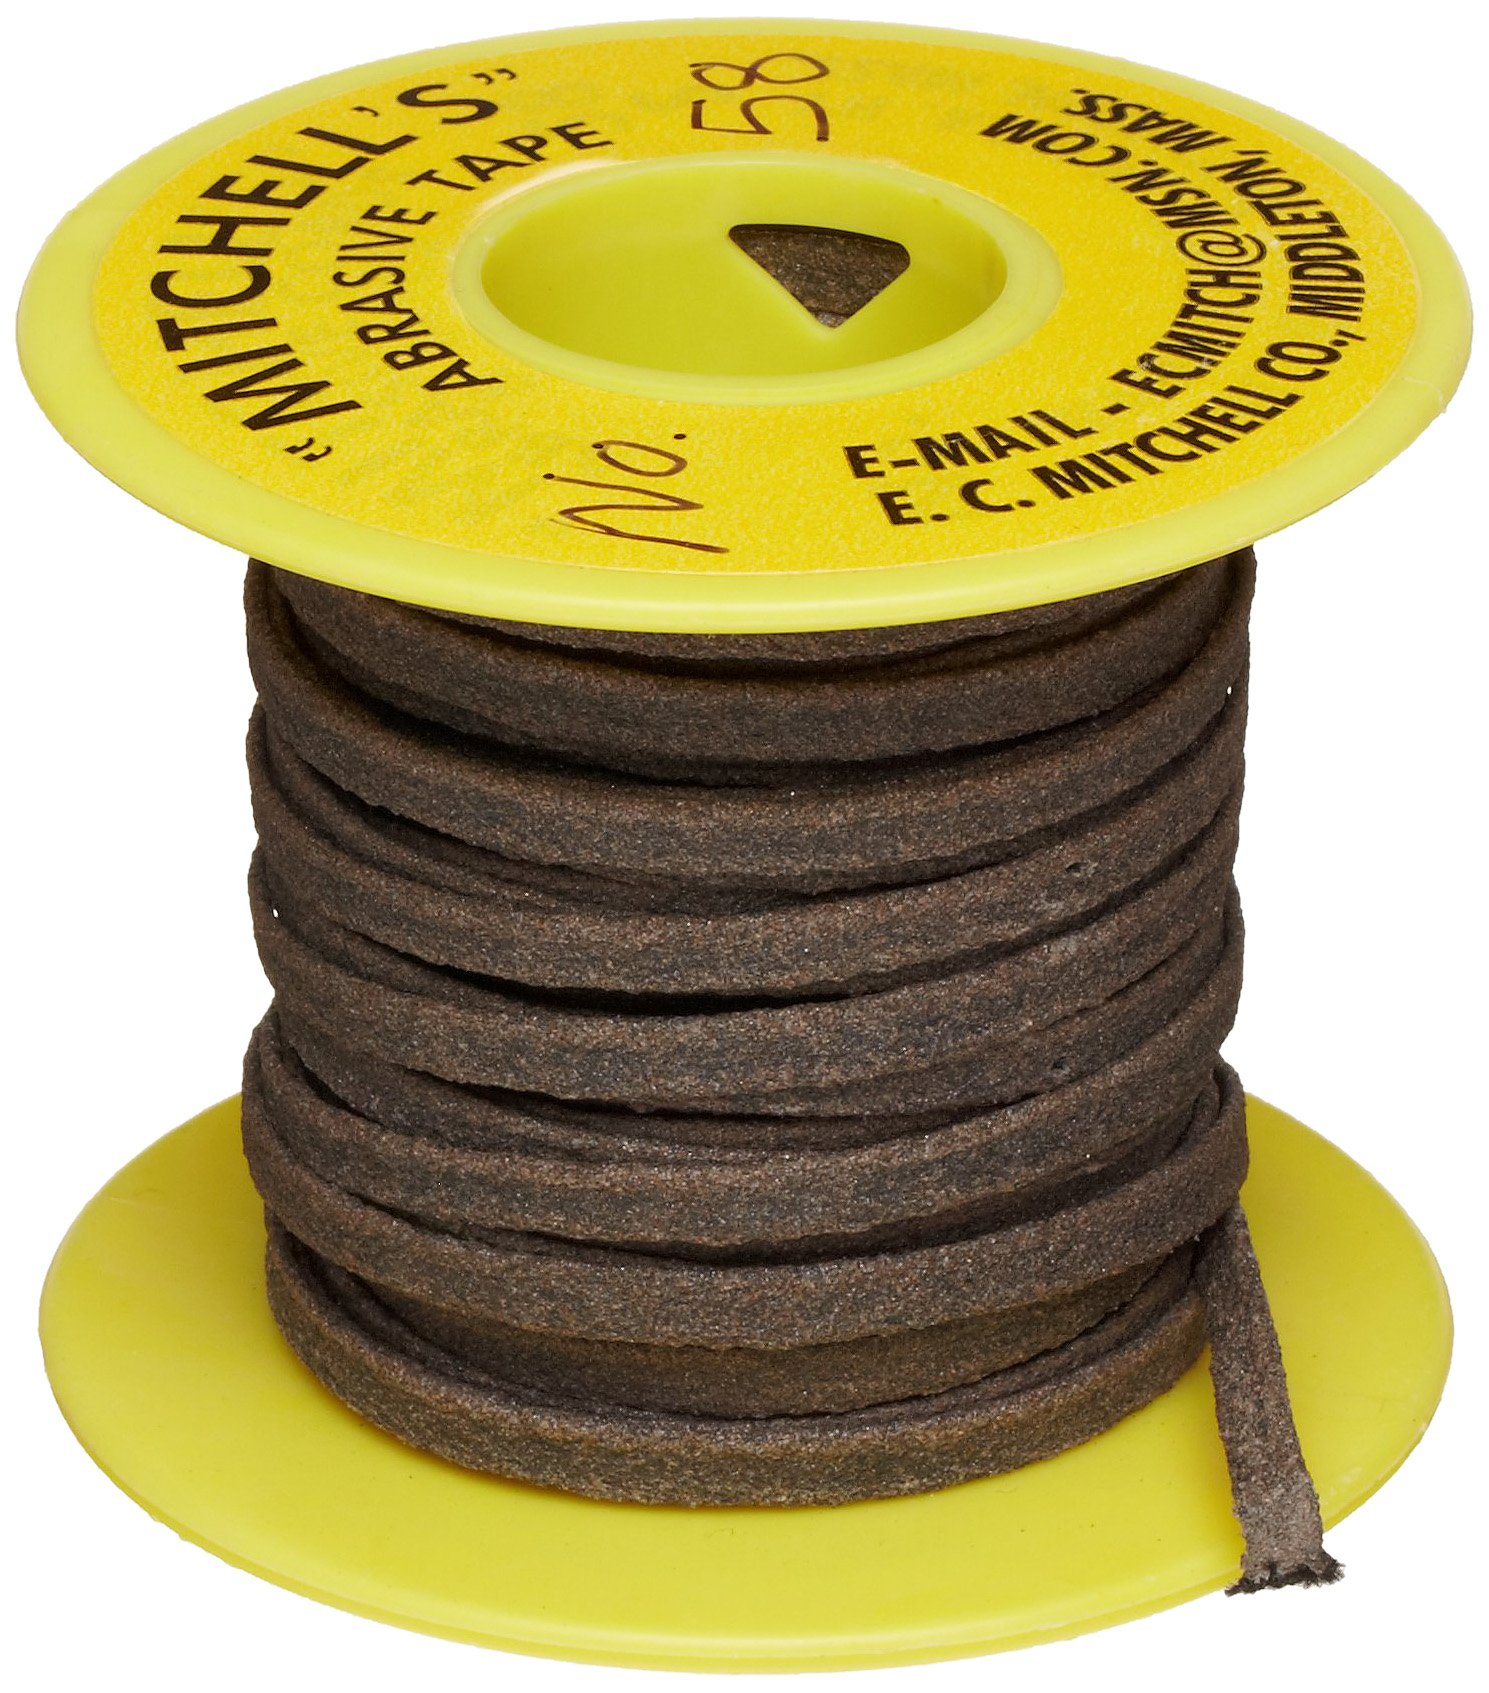 Mitchell Abrasives 58 Flat Abrasive Tape, Aluminum Oxide 150 Grit 3/16'' Wide x 25 Feet by Mitchell Abrasives